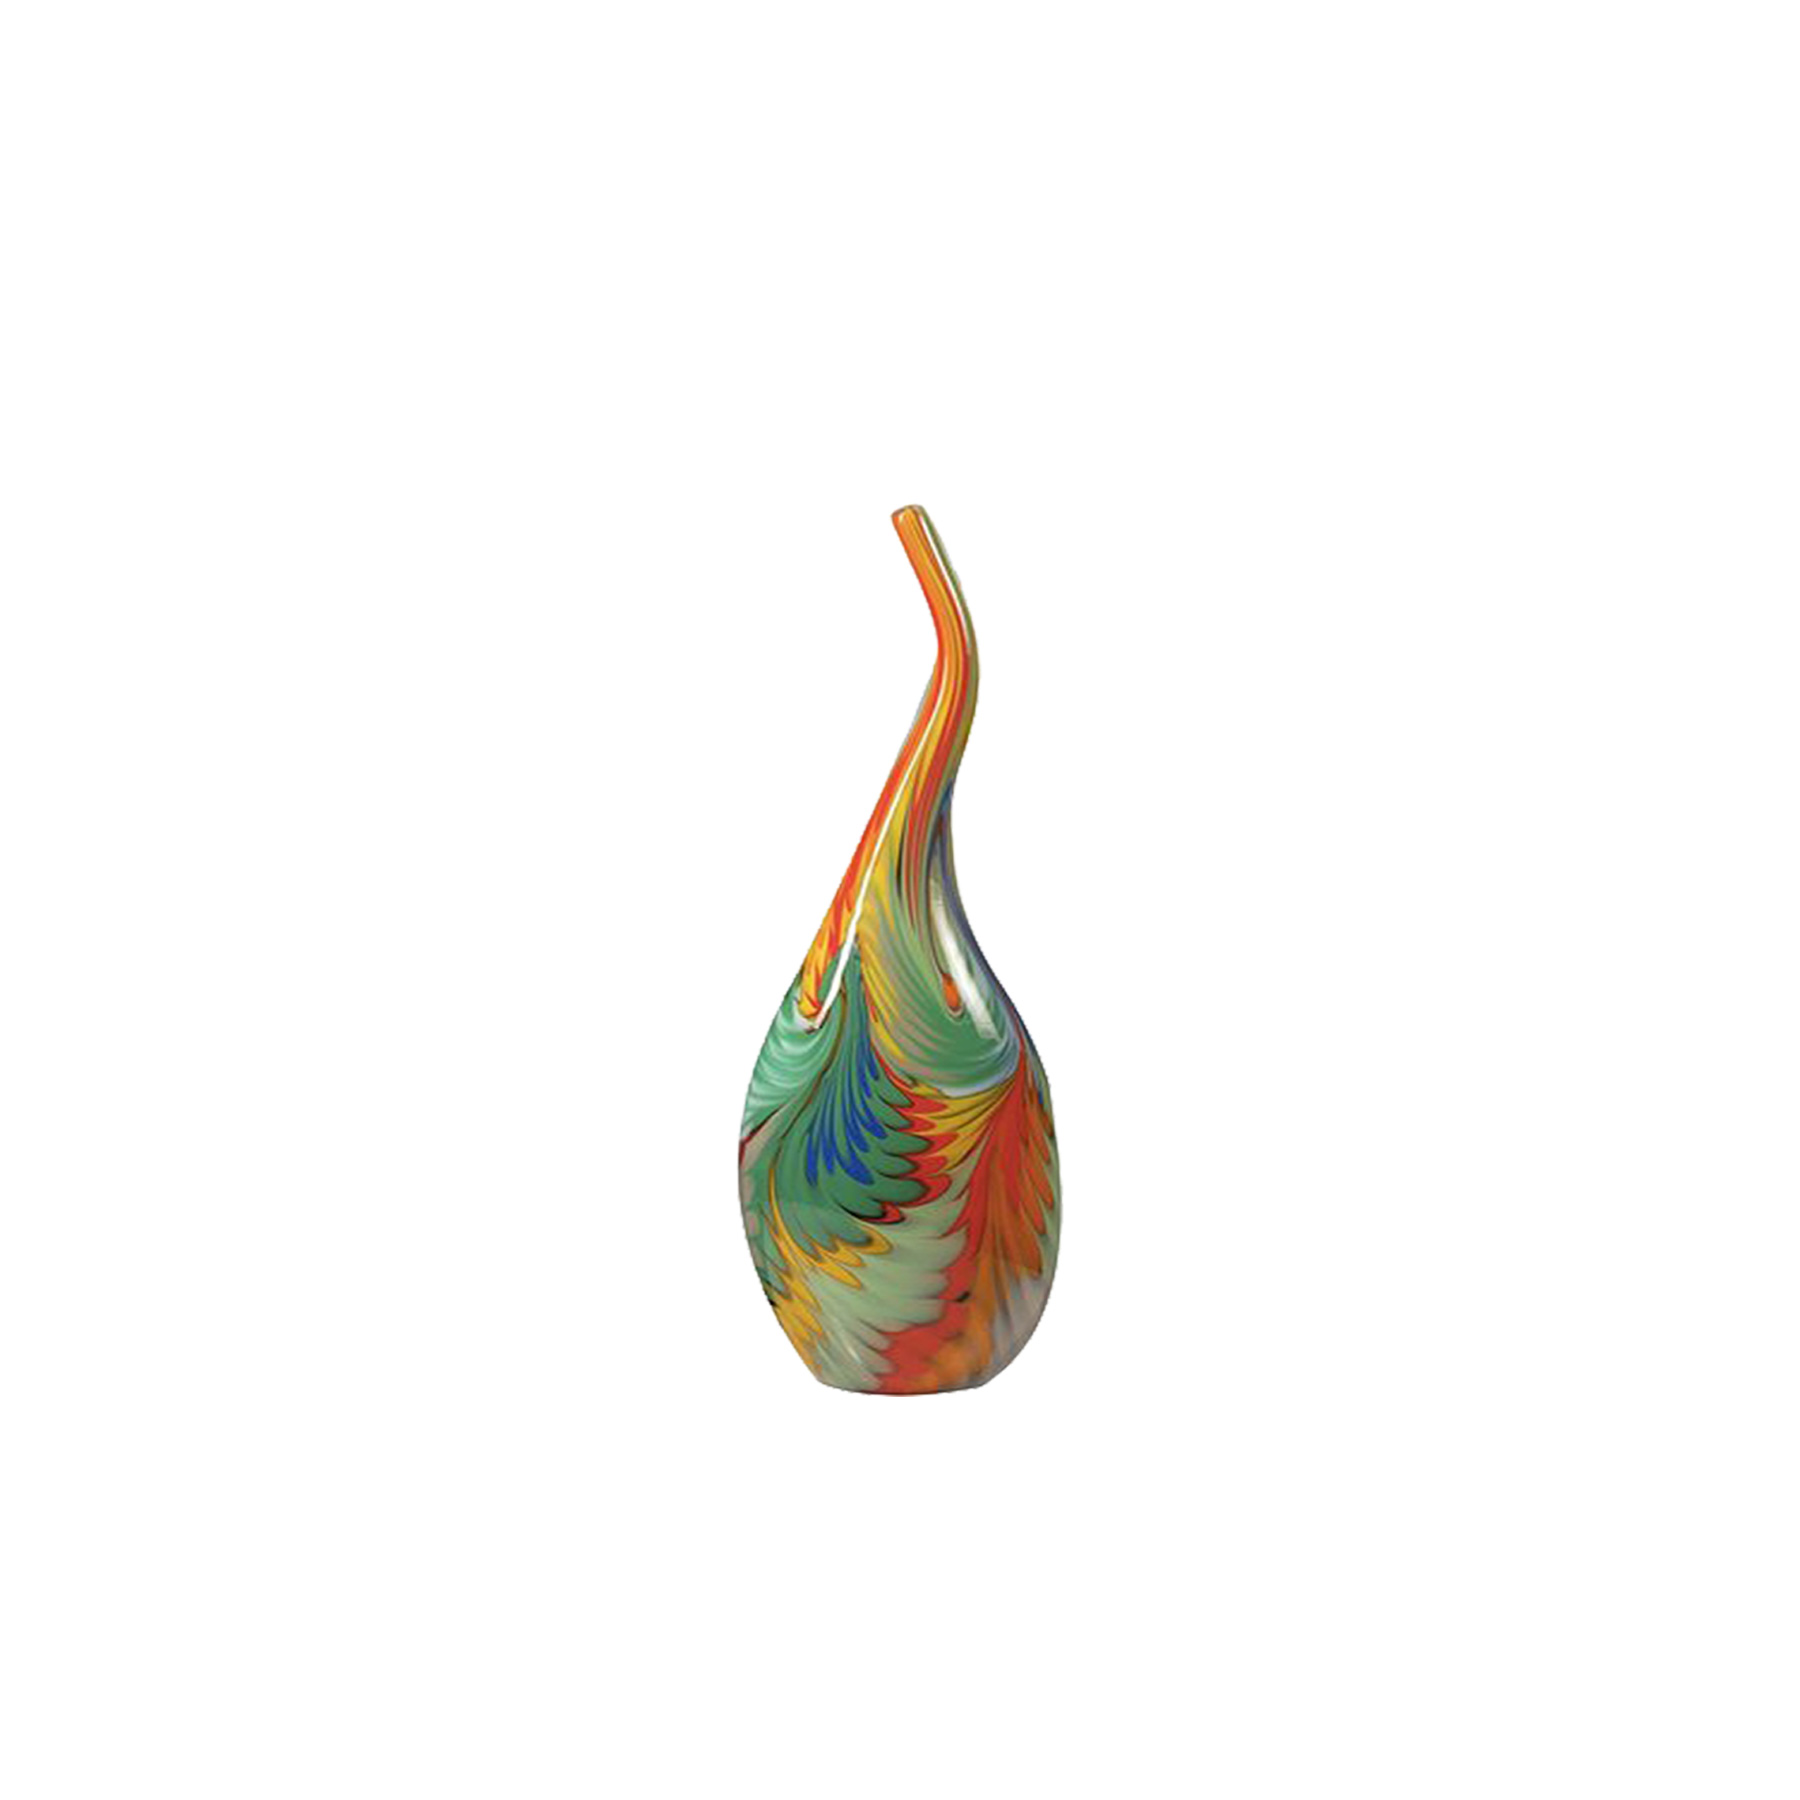 Giungla Tall Vase - Part of the Giungla 'Jungle' Collection, this exceptional vase is a testament to innovative design vision and traditional craftsmanship. Made of Murano glass through the ancient Cane technique, where cane refers to rods of glass, which can be simple and contain single colour, or complex and contain strands of one or several colours creating a pattern. The subtle contour of the vase, its slender neck and wide body are enhanced by the rich colour palette: the sinuous and wispy decorations come together to create a vibrant canvas that evokes the graceful body of a tropical bird. Used as a centrepiece on a console, side table, or dining table, this piece will add a note of joy and colour to any decor.